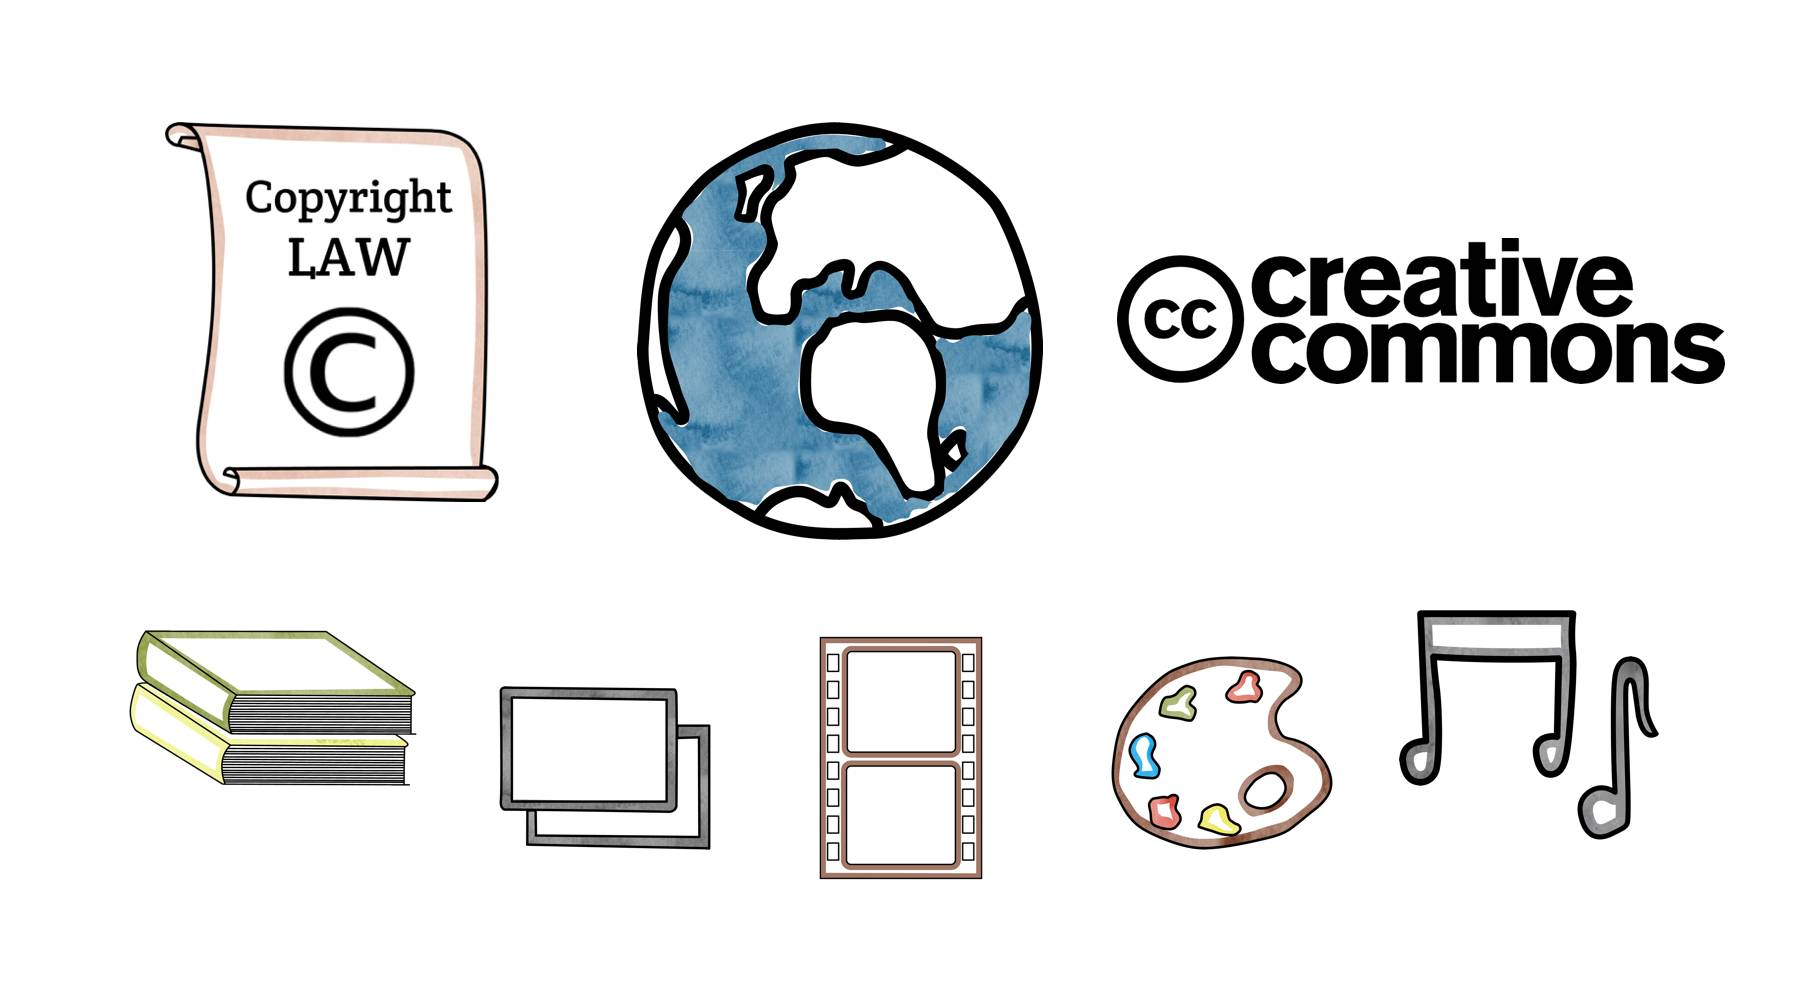 copyright and creative commons explained by common craft video